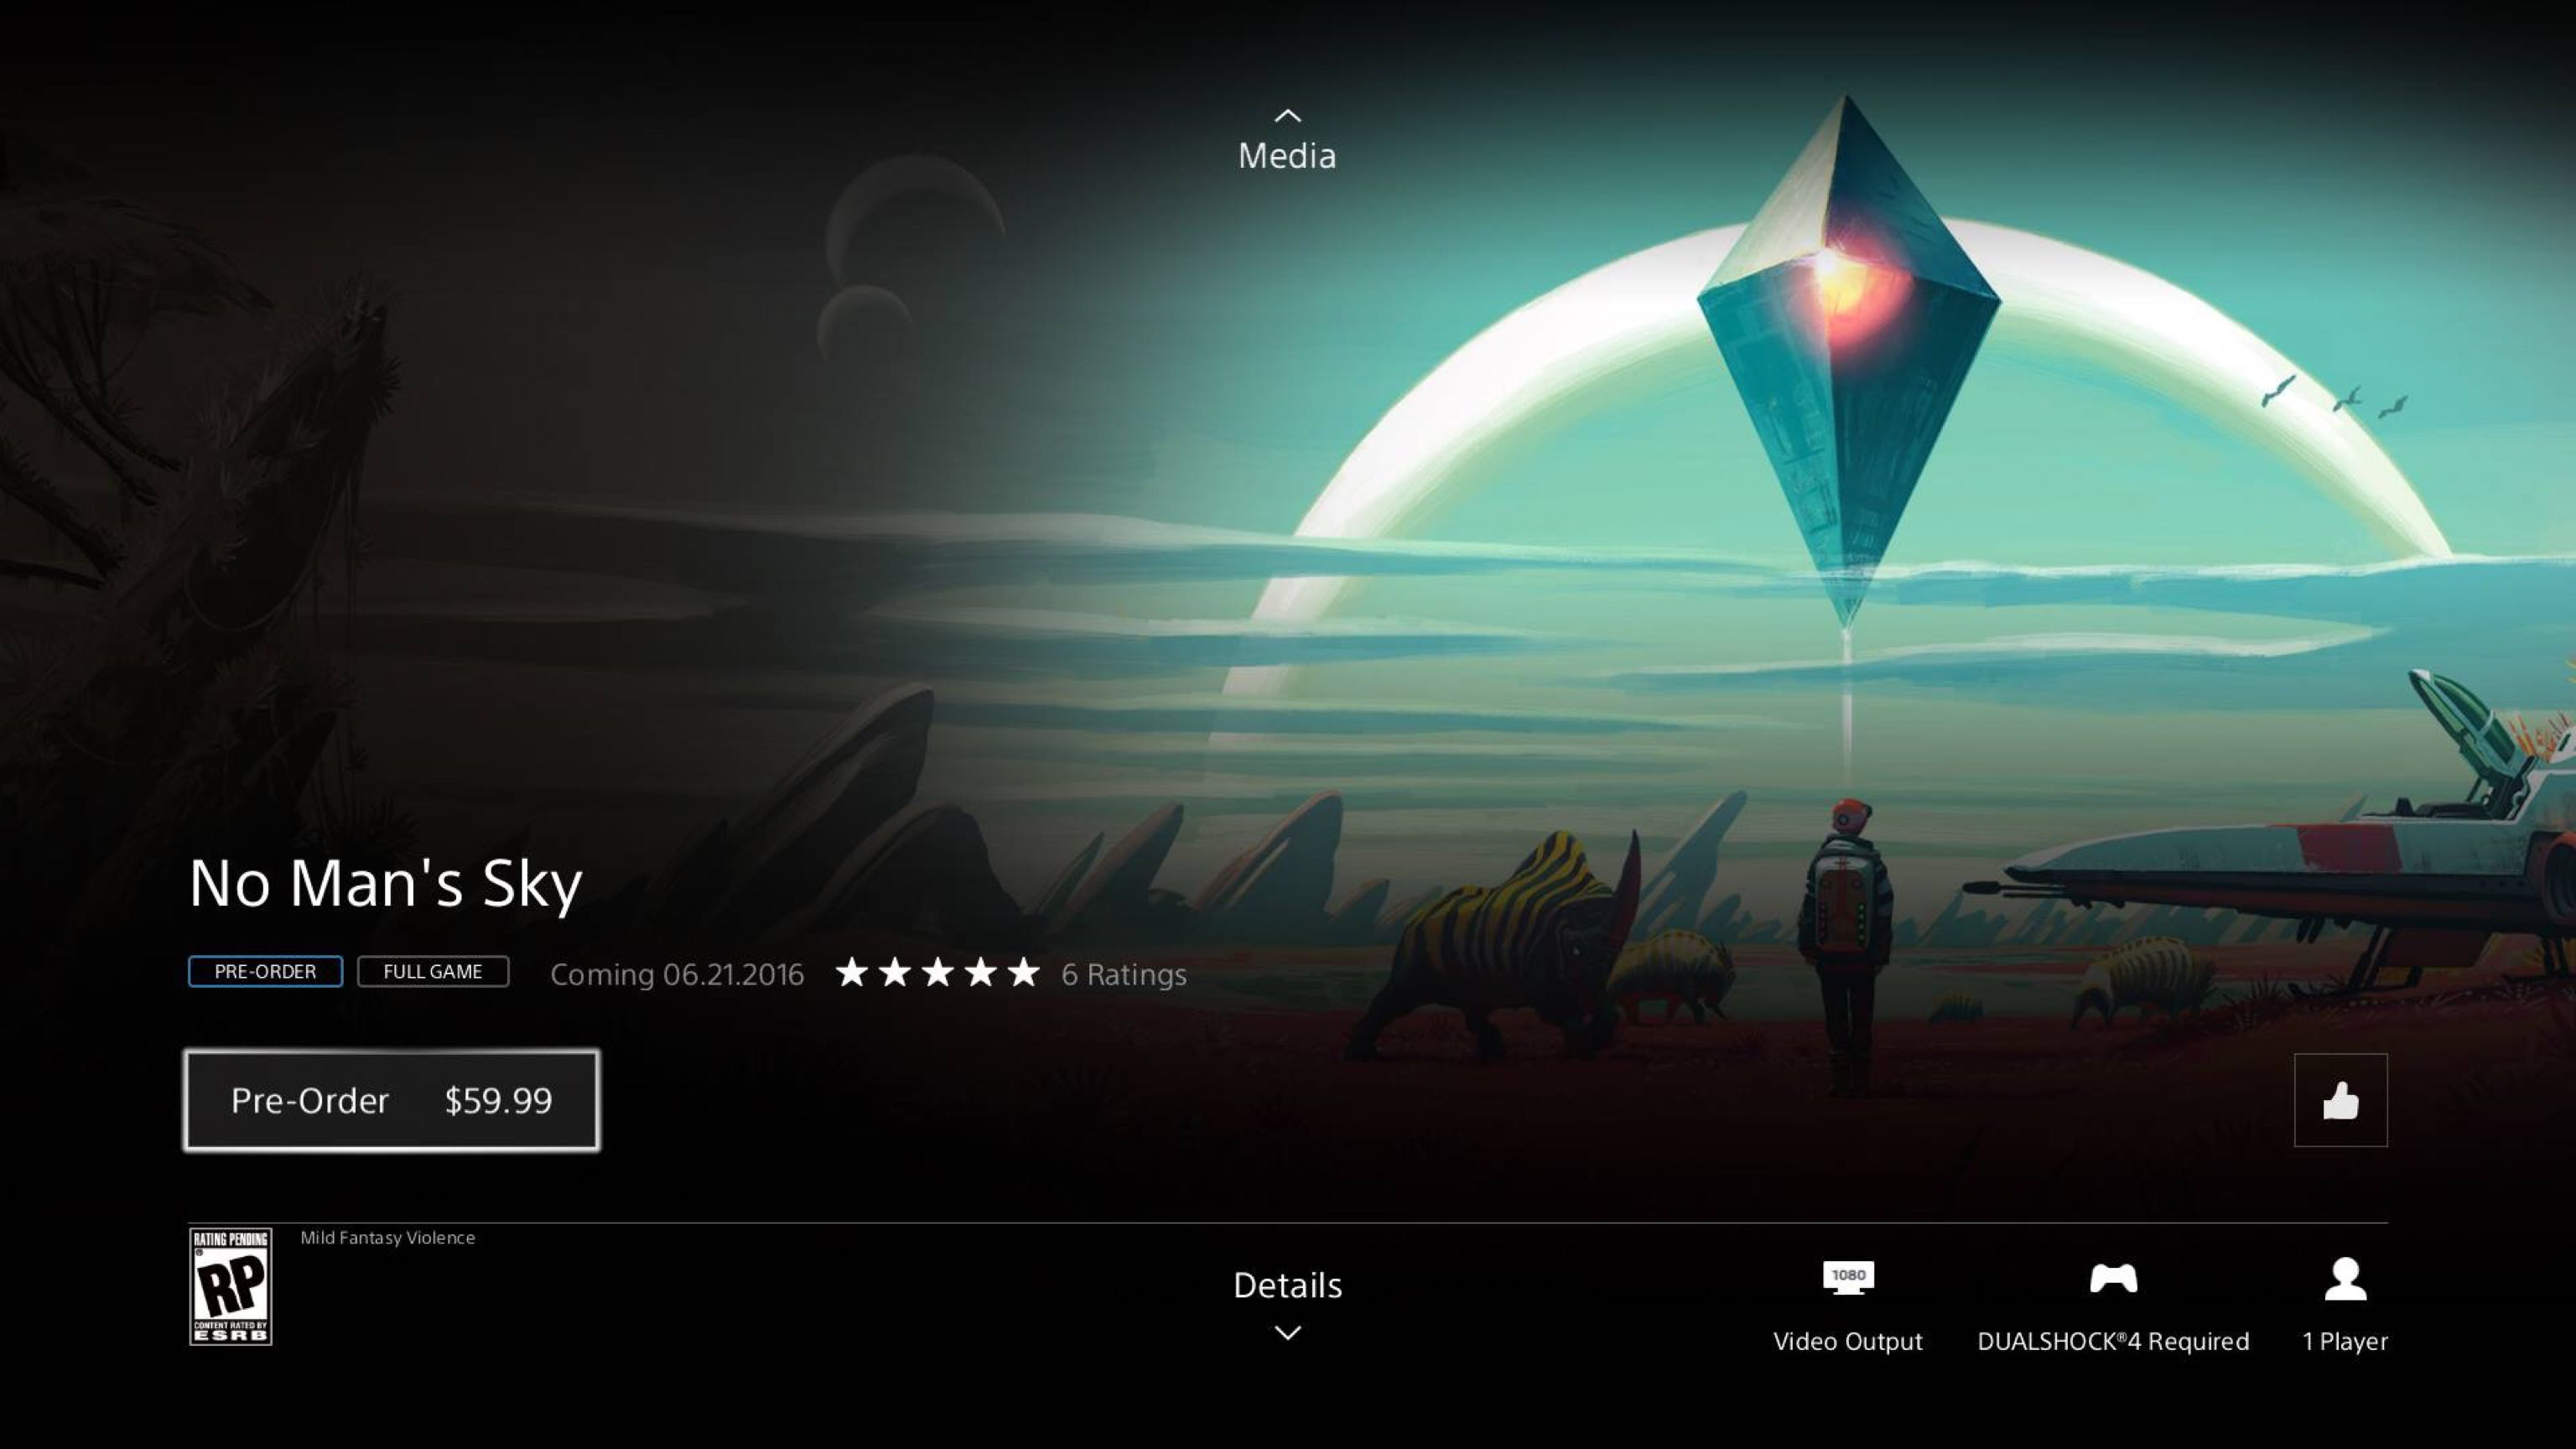 New Playstation Store Screenshots Show Appealing Revamped Interface